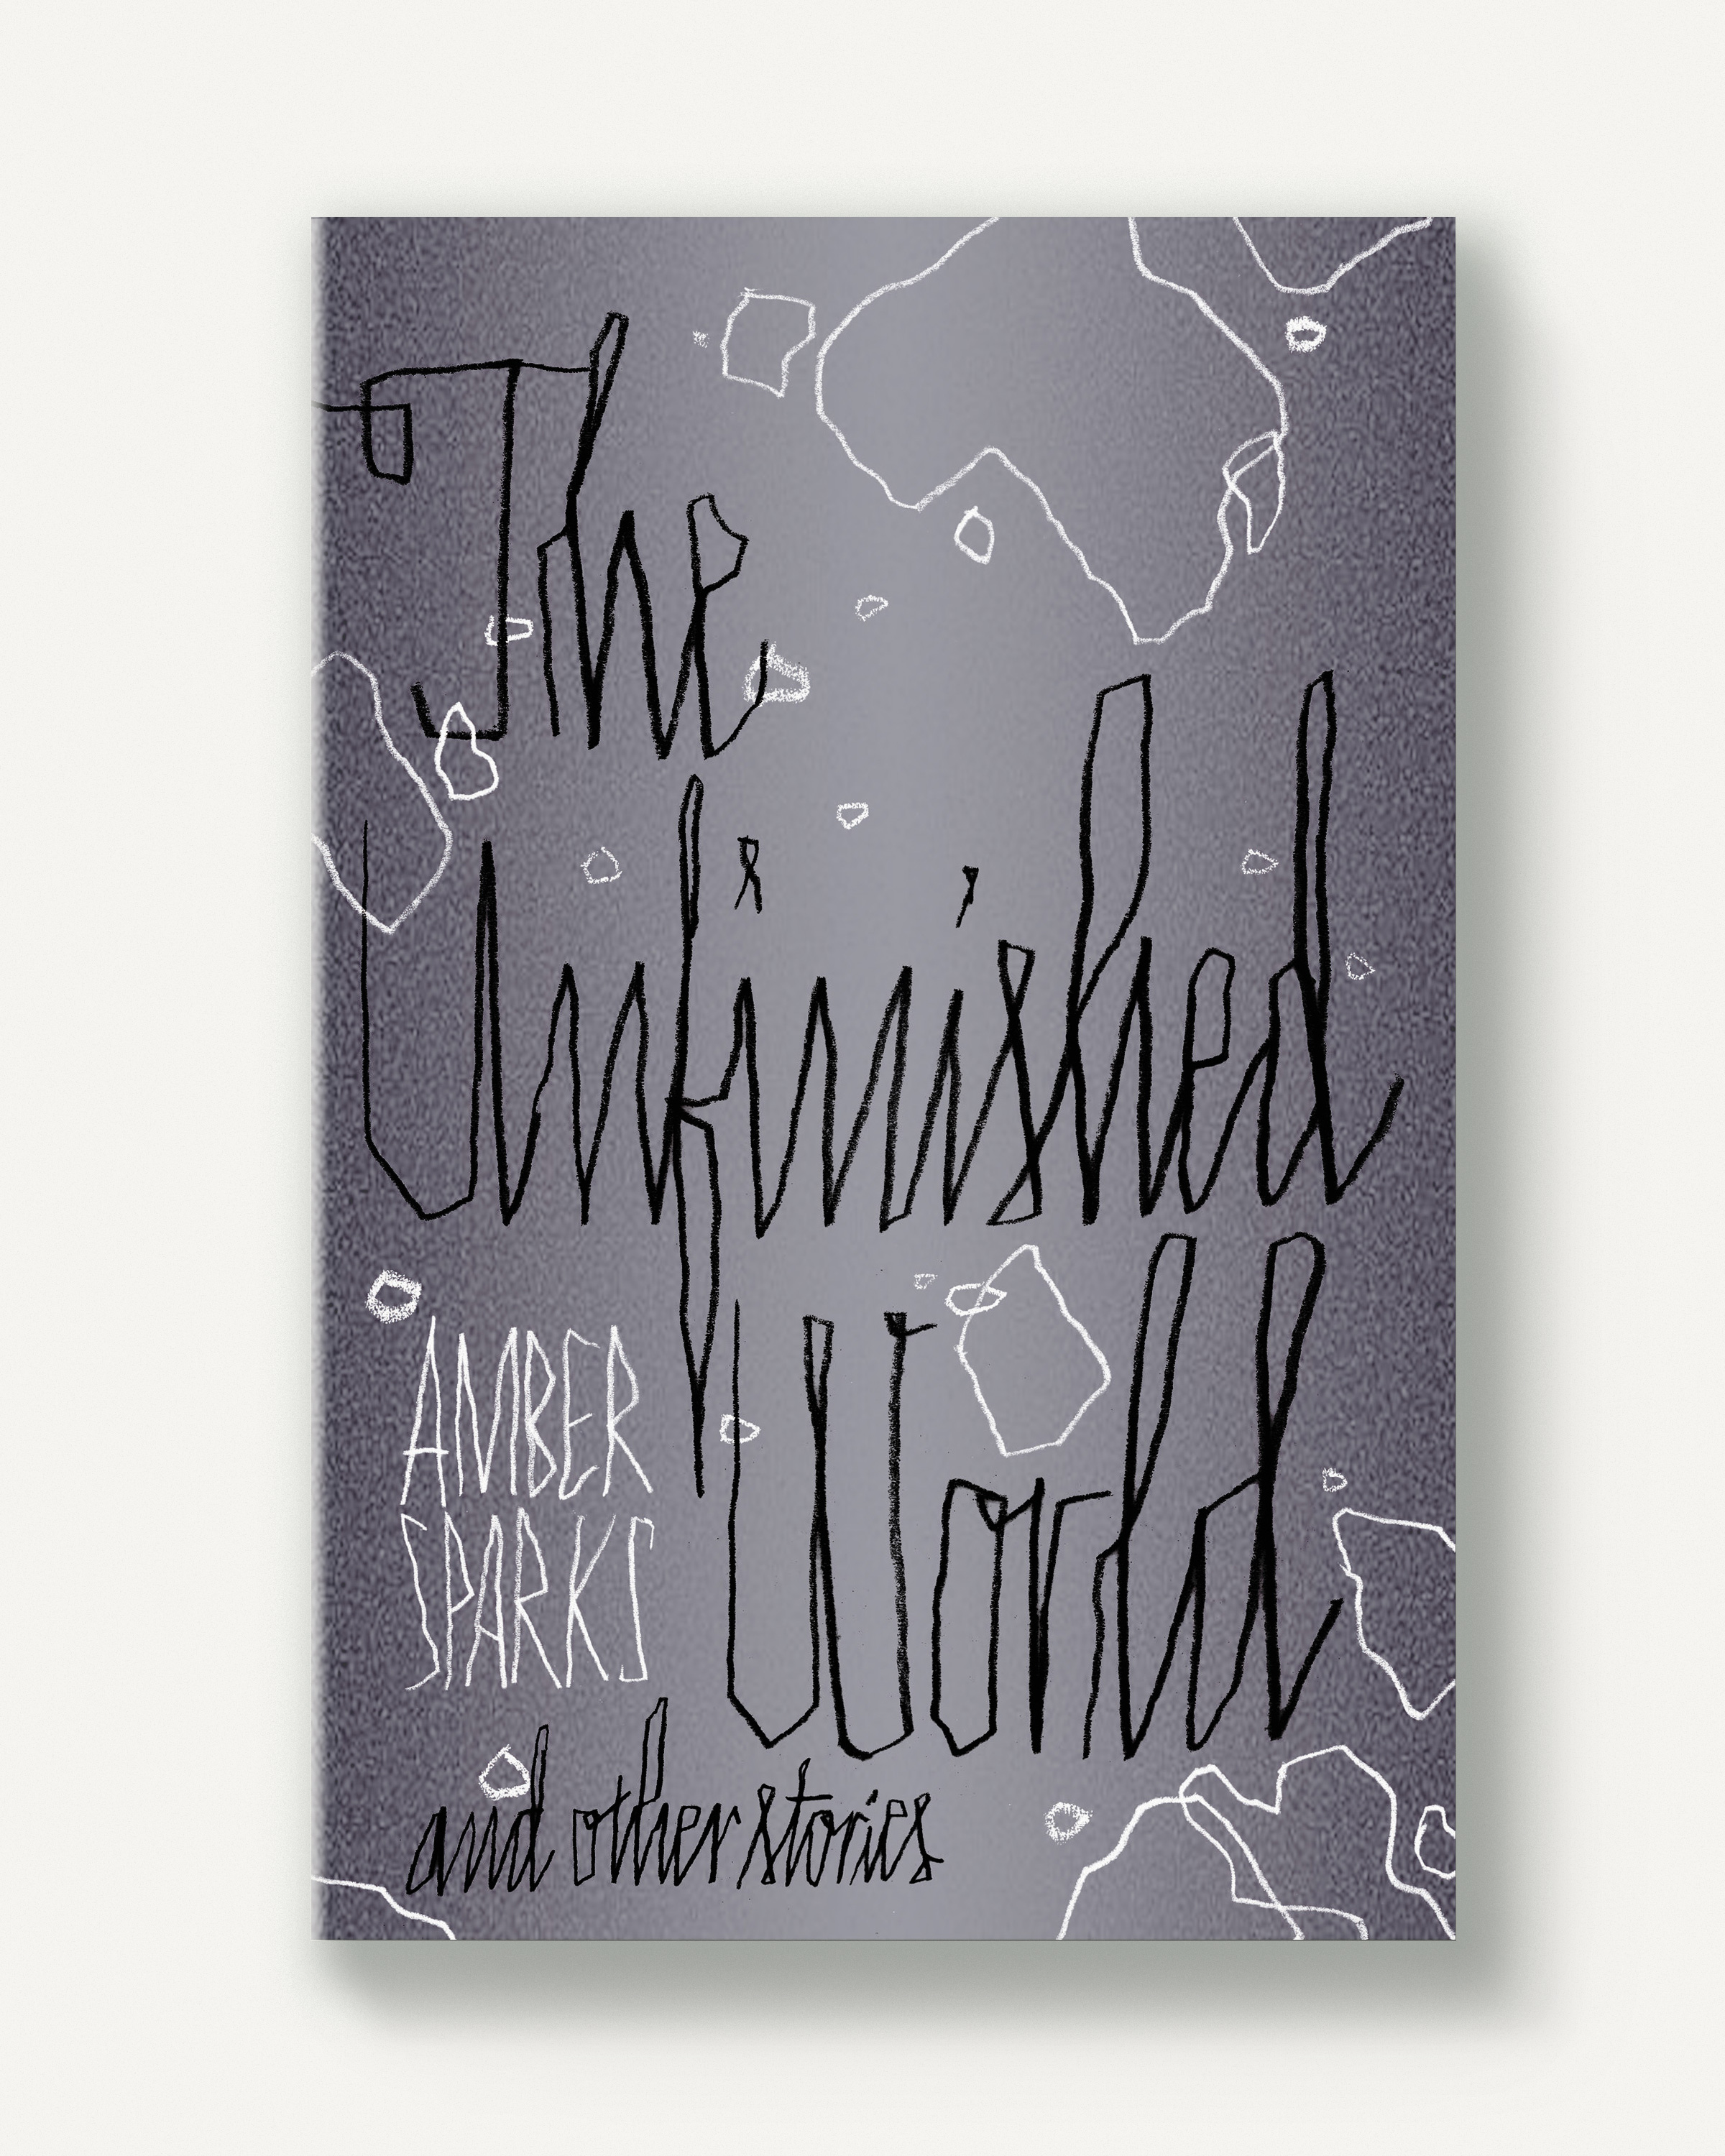 Books_UnfinishedWorld02.jpg